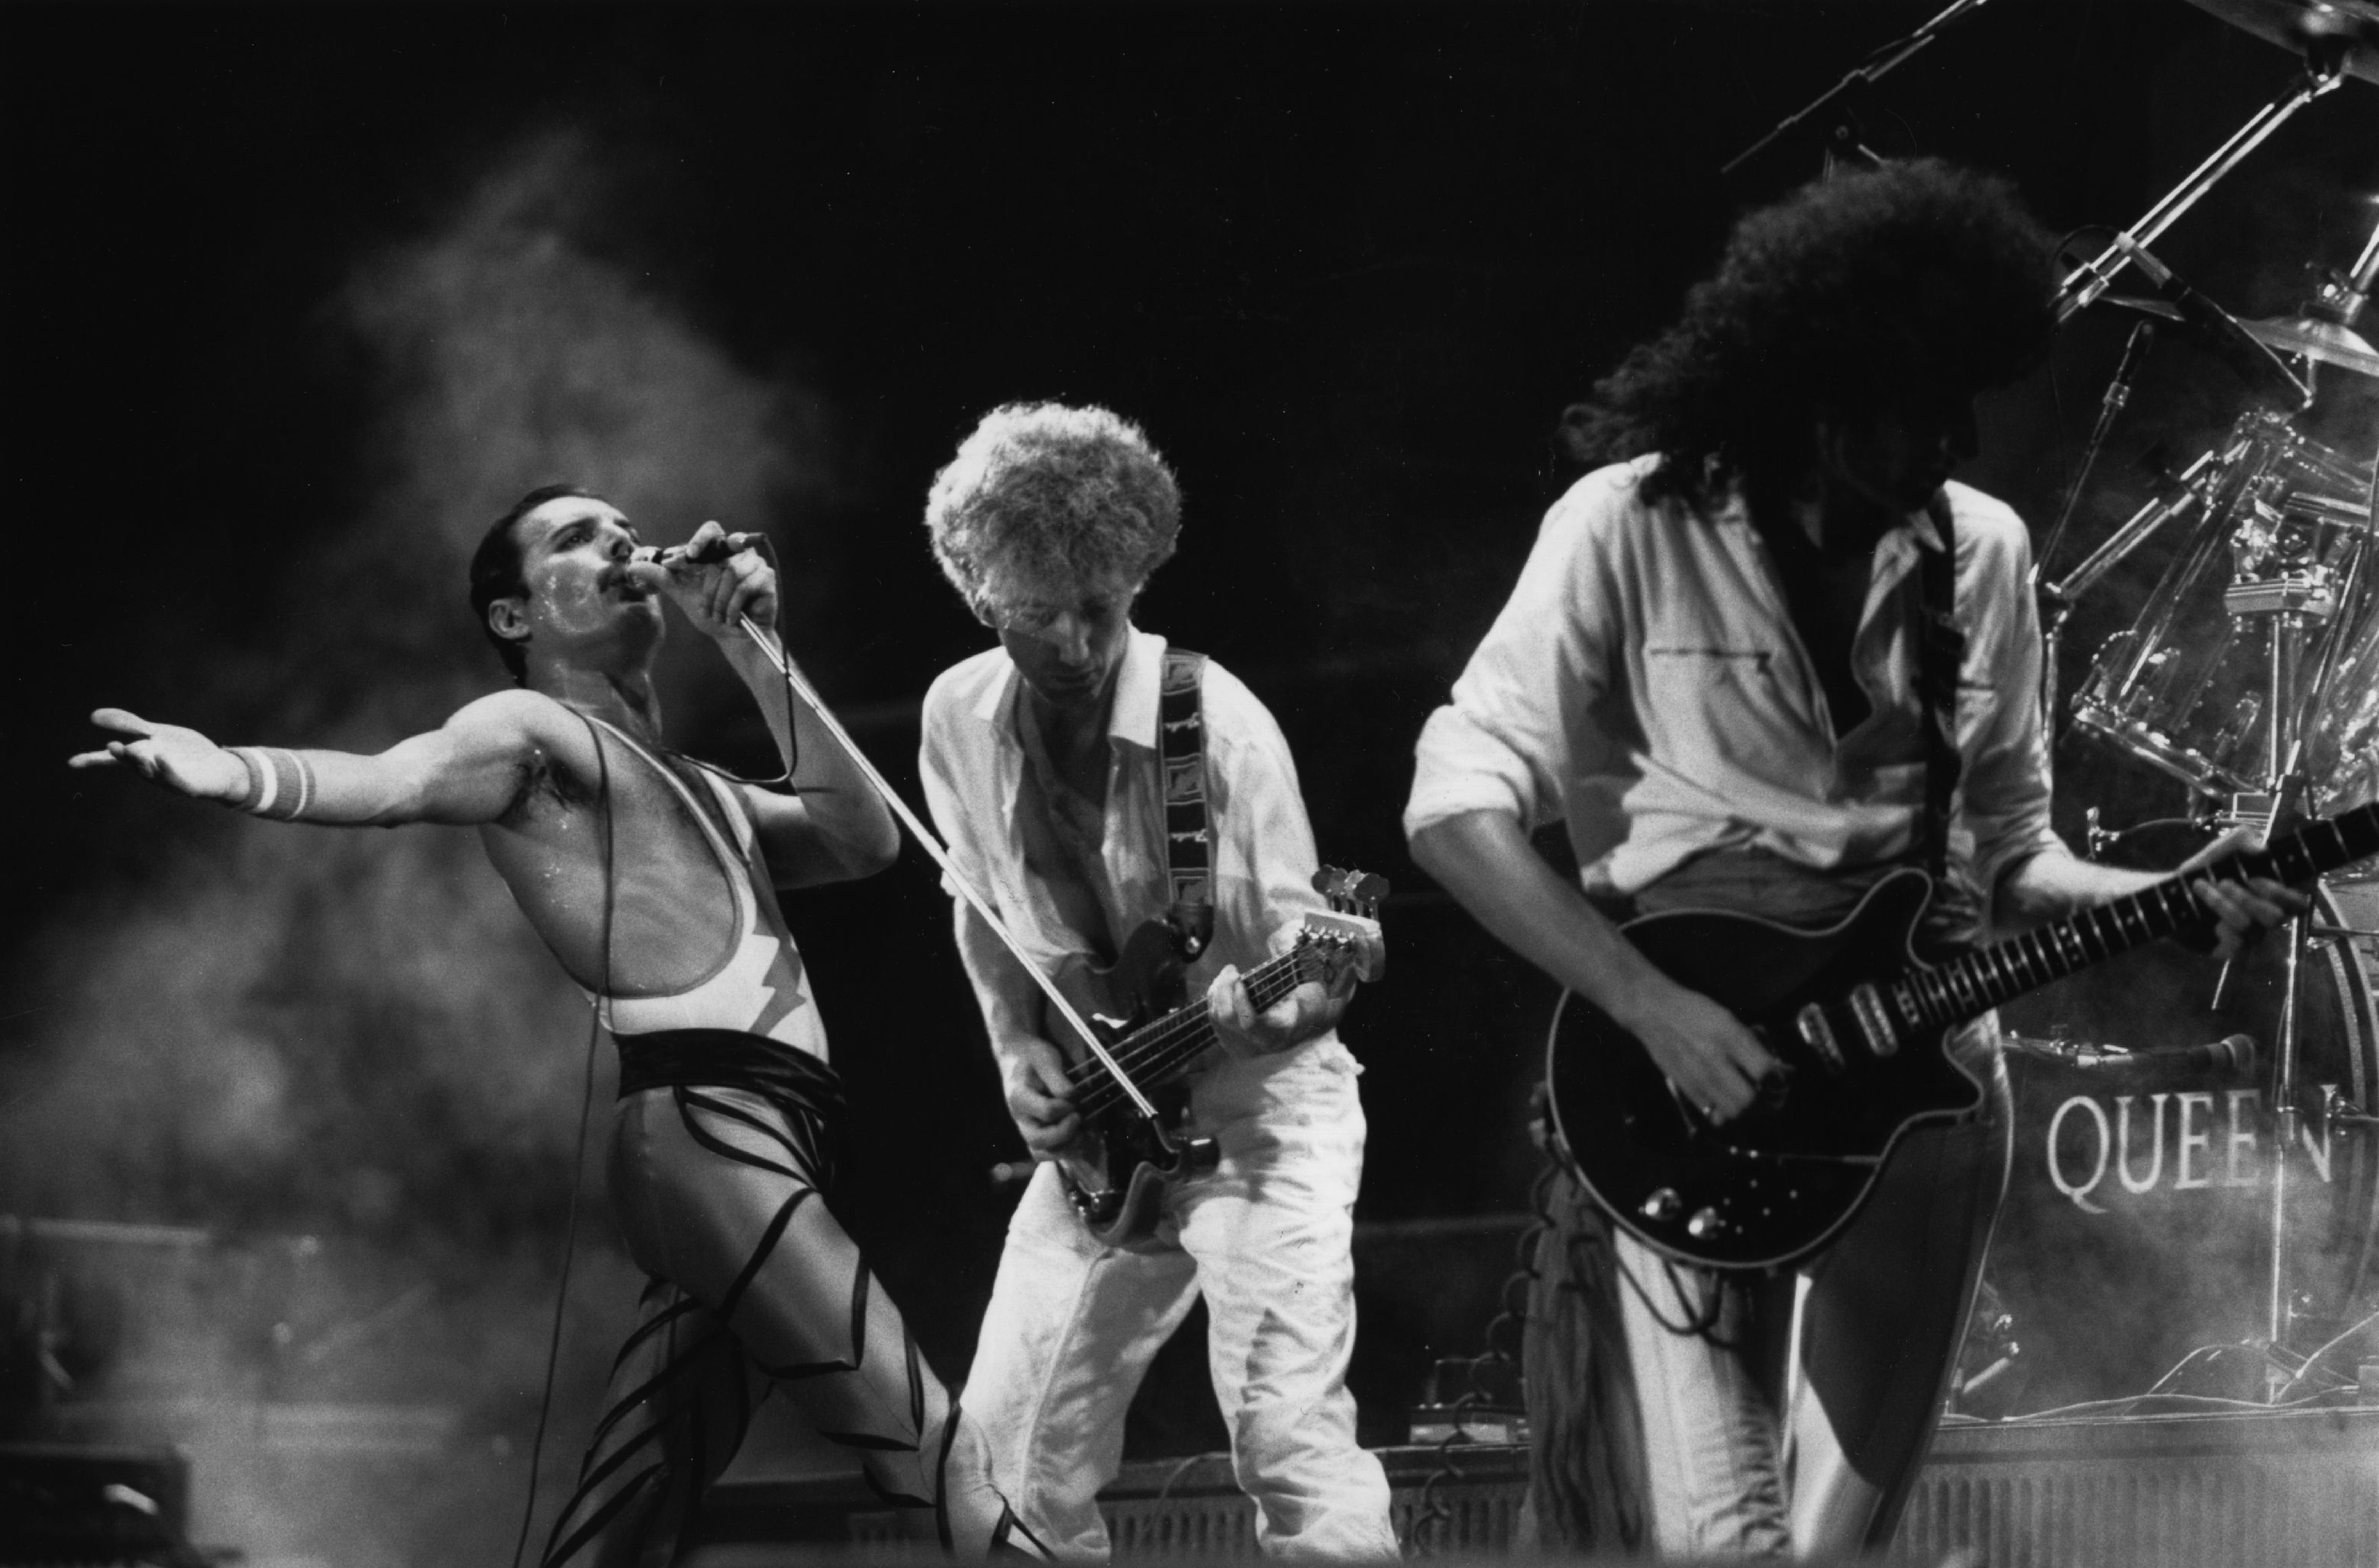 British rock group Queen in concert, from left to right; Freddie Mercury (Frederick Bulsara, 1946 - 1991), John Deacon, and Brian May. Original Publication: People Disc - HU0463 (Photo by Express Newspapers/Getty Images)